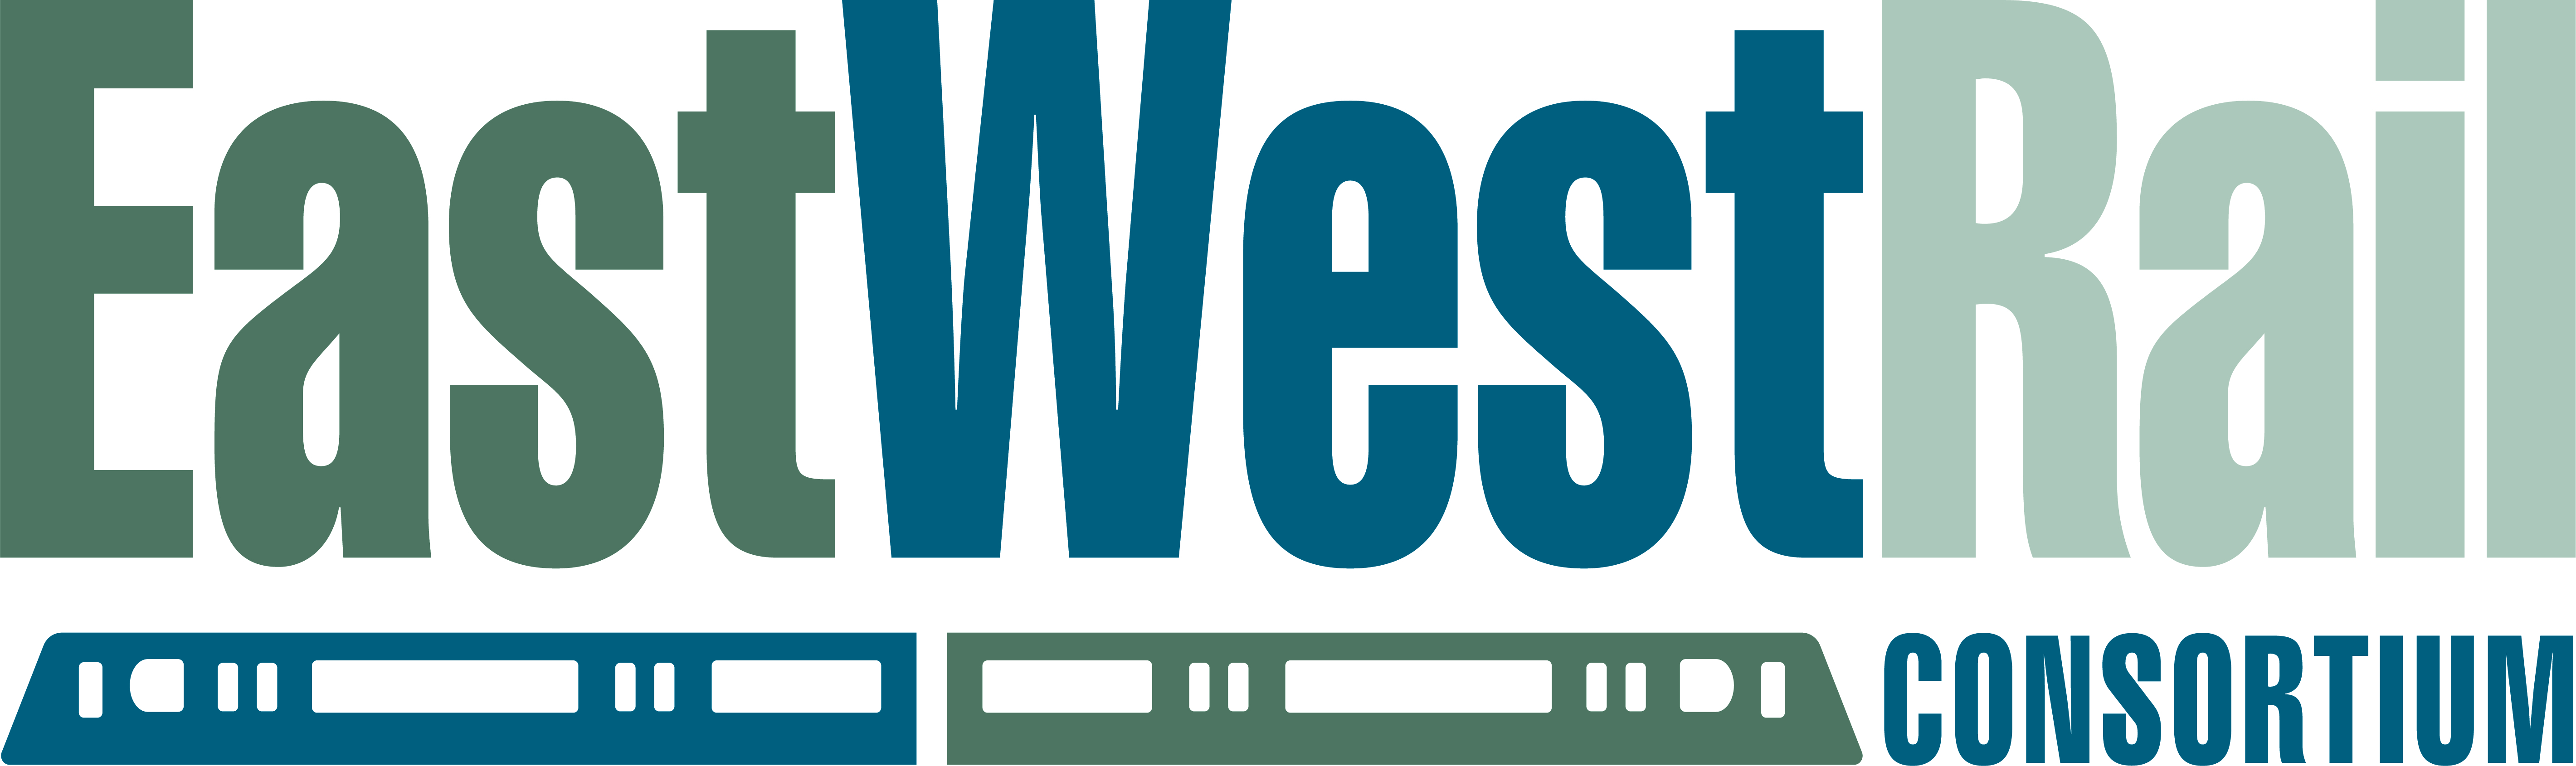 The Consortium: Making the case for East West Rail